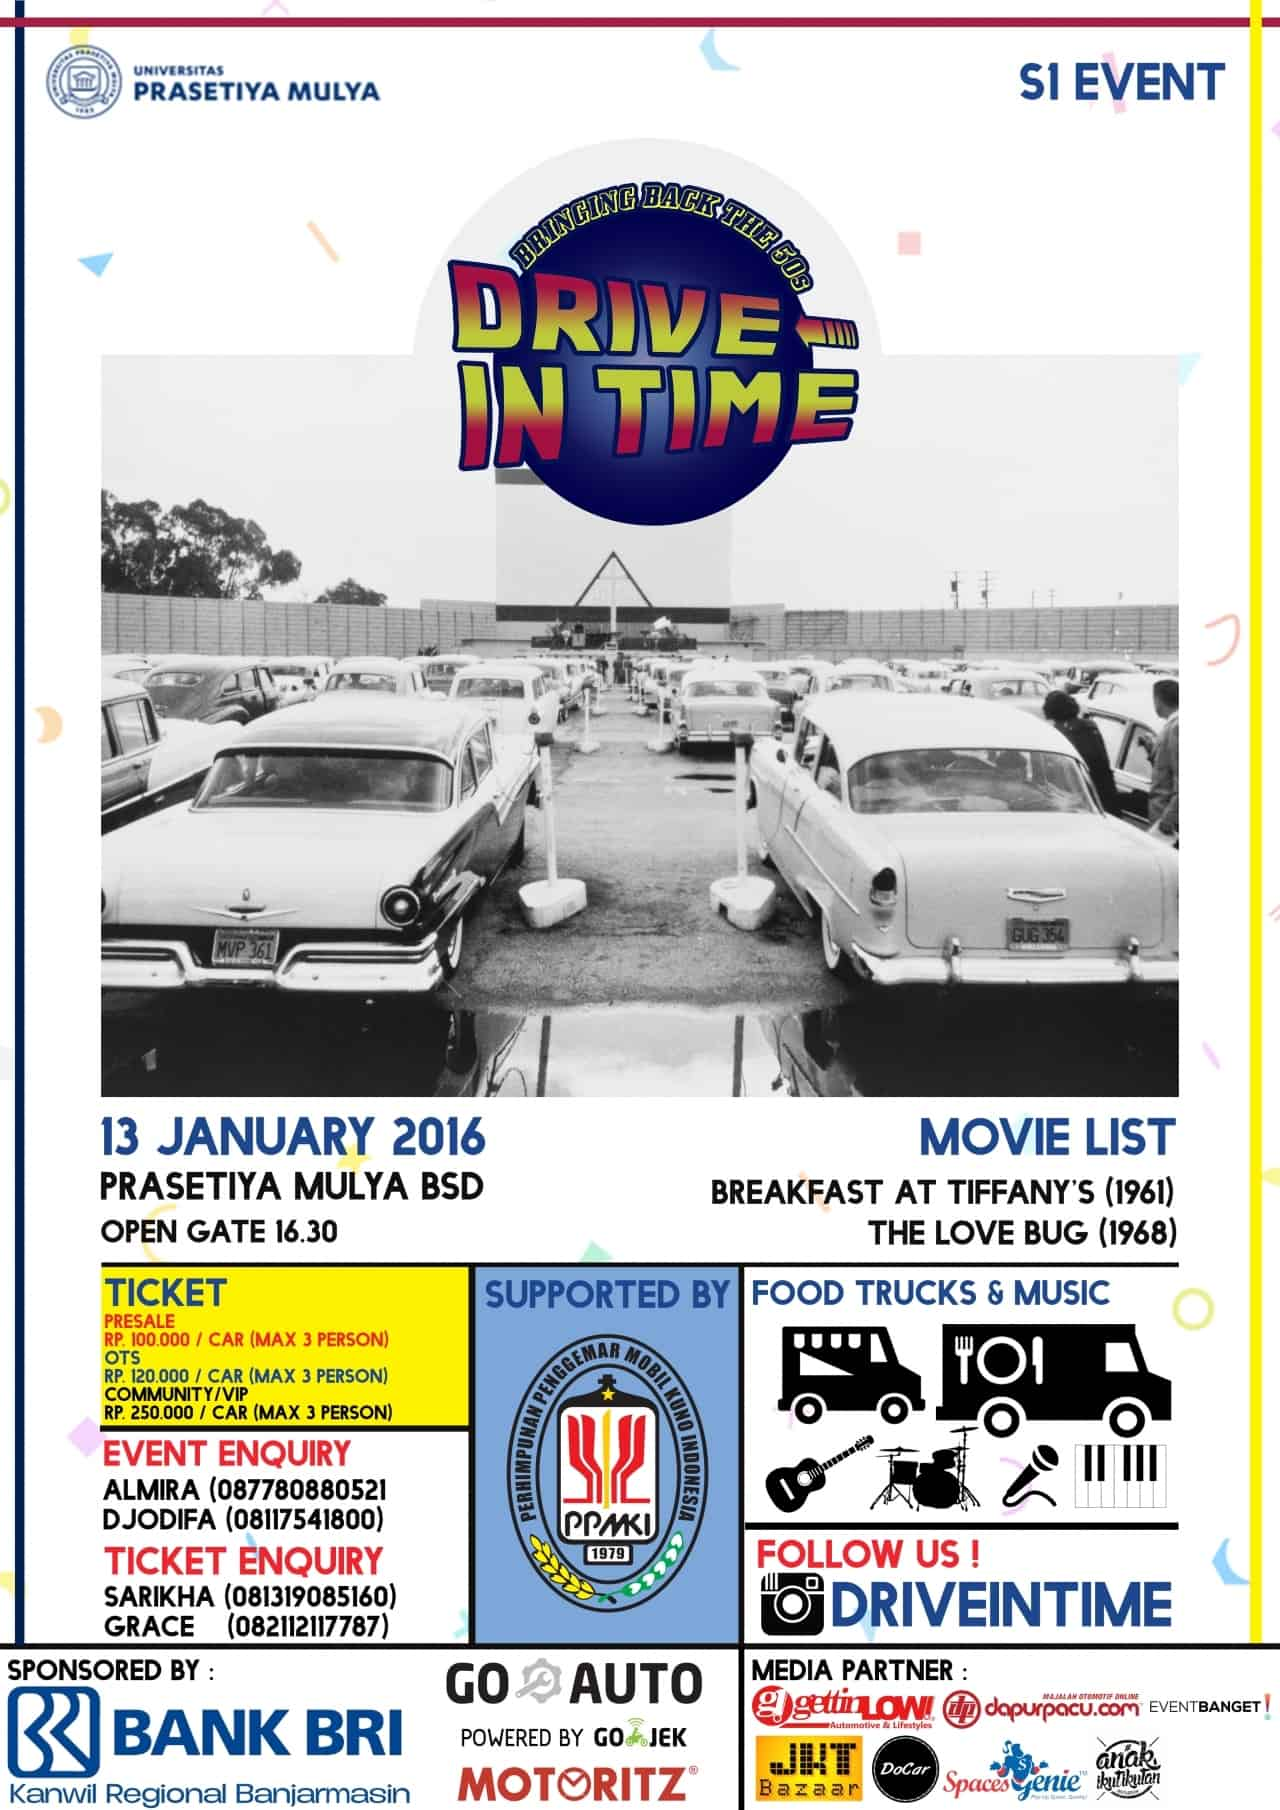 drive-in time